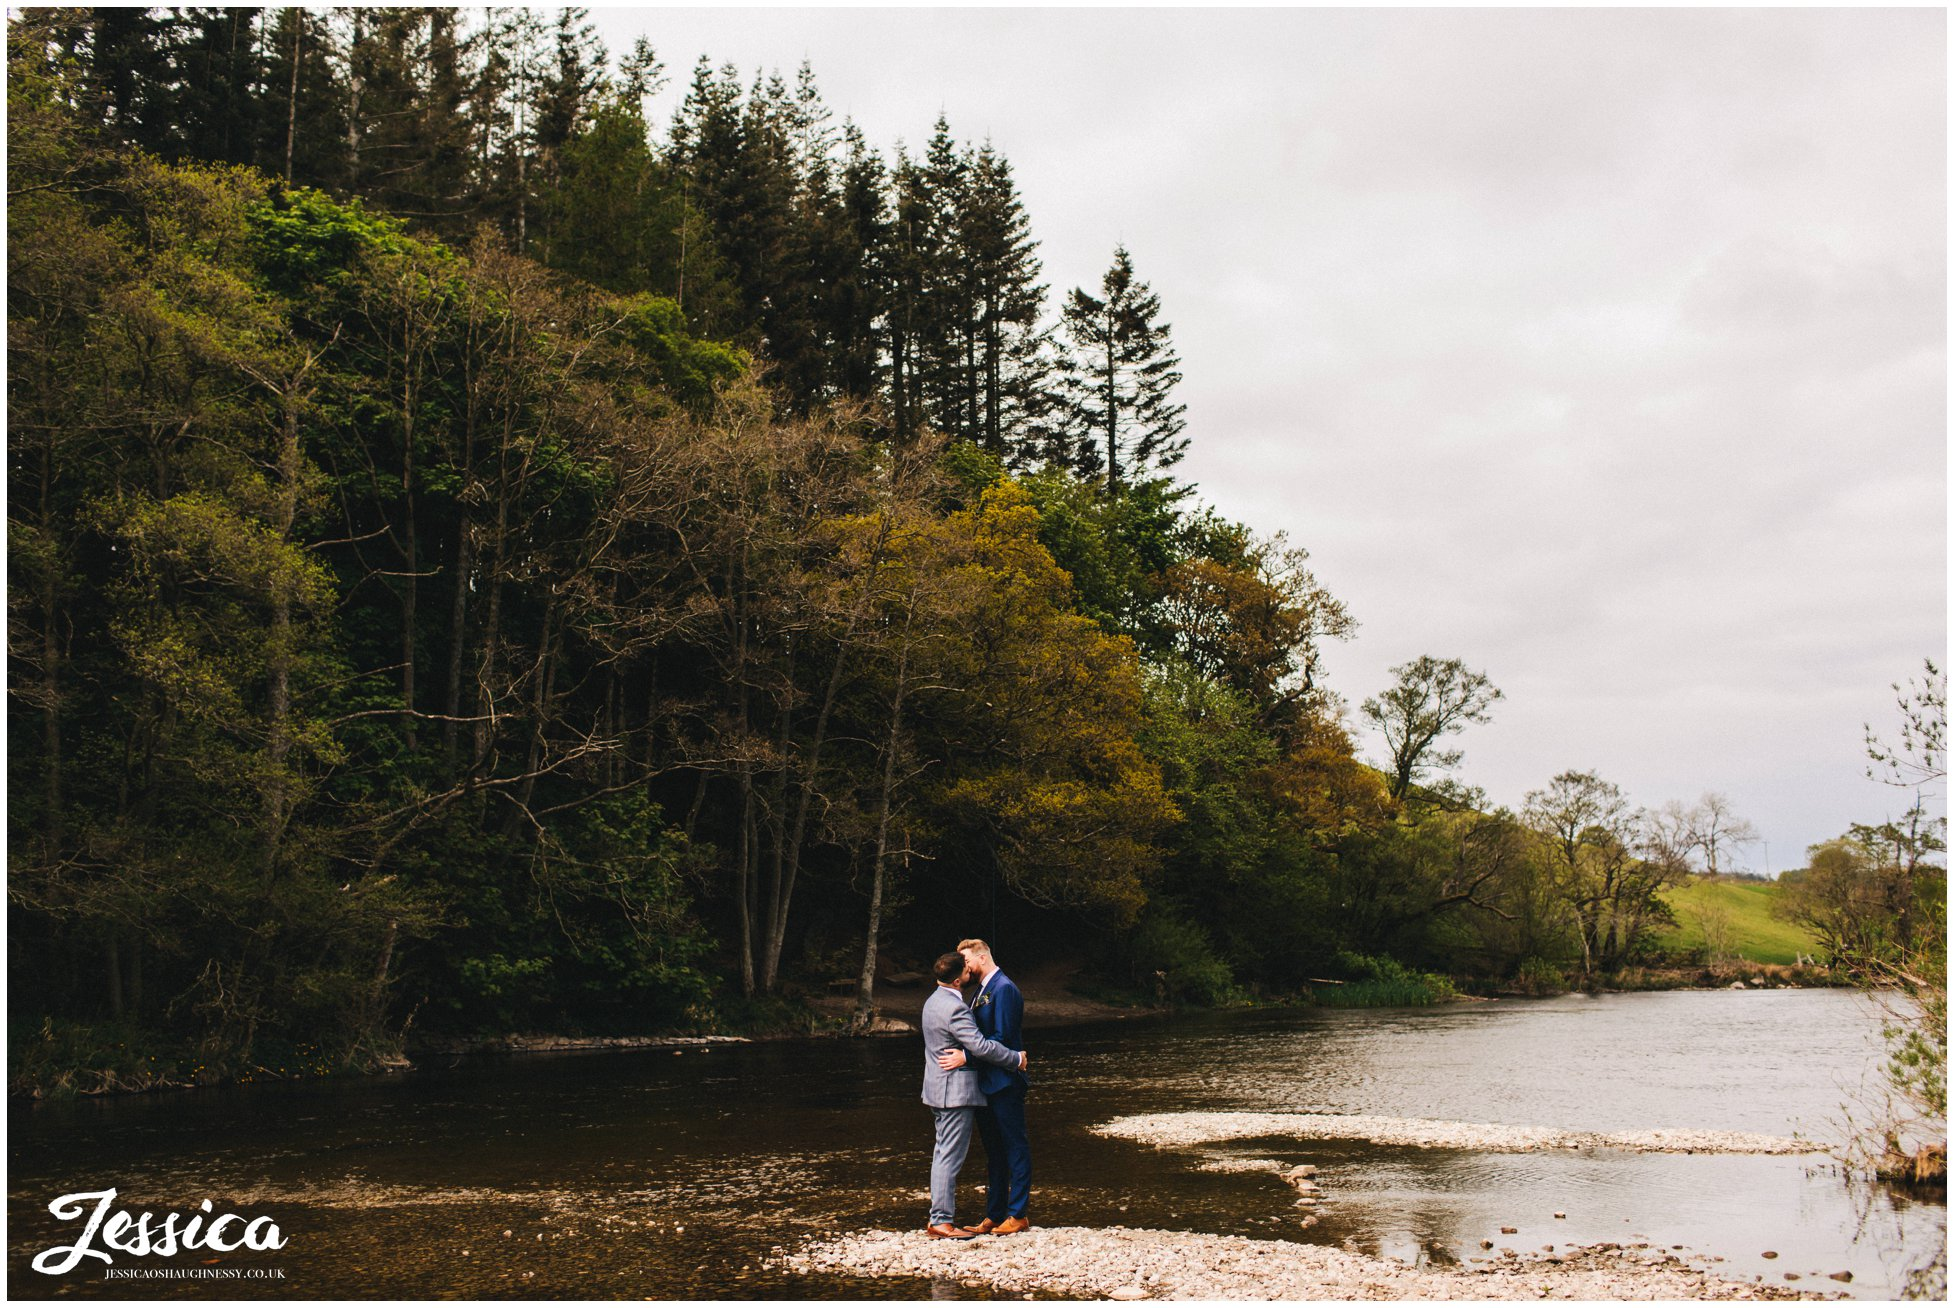 the couple share a kiss down by the river in pooley bridge